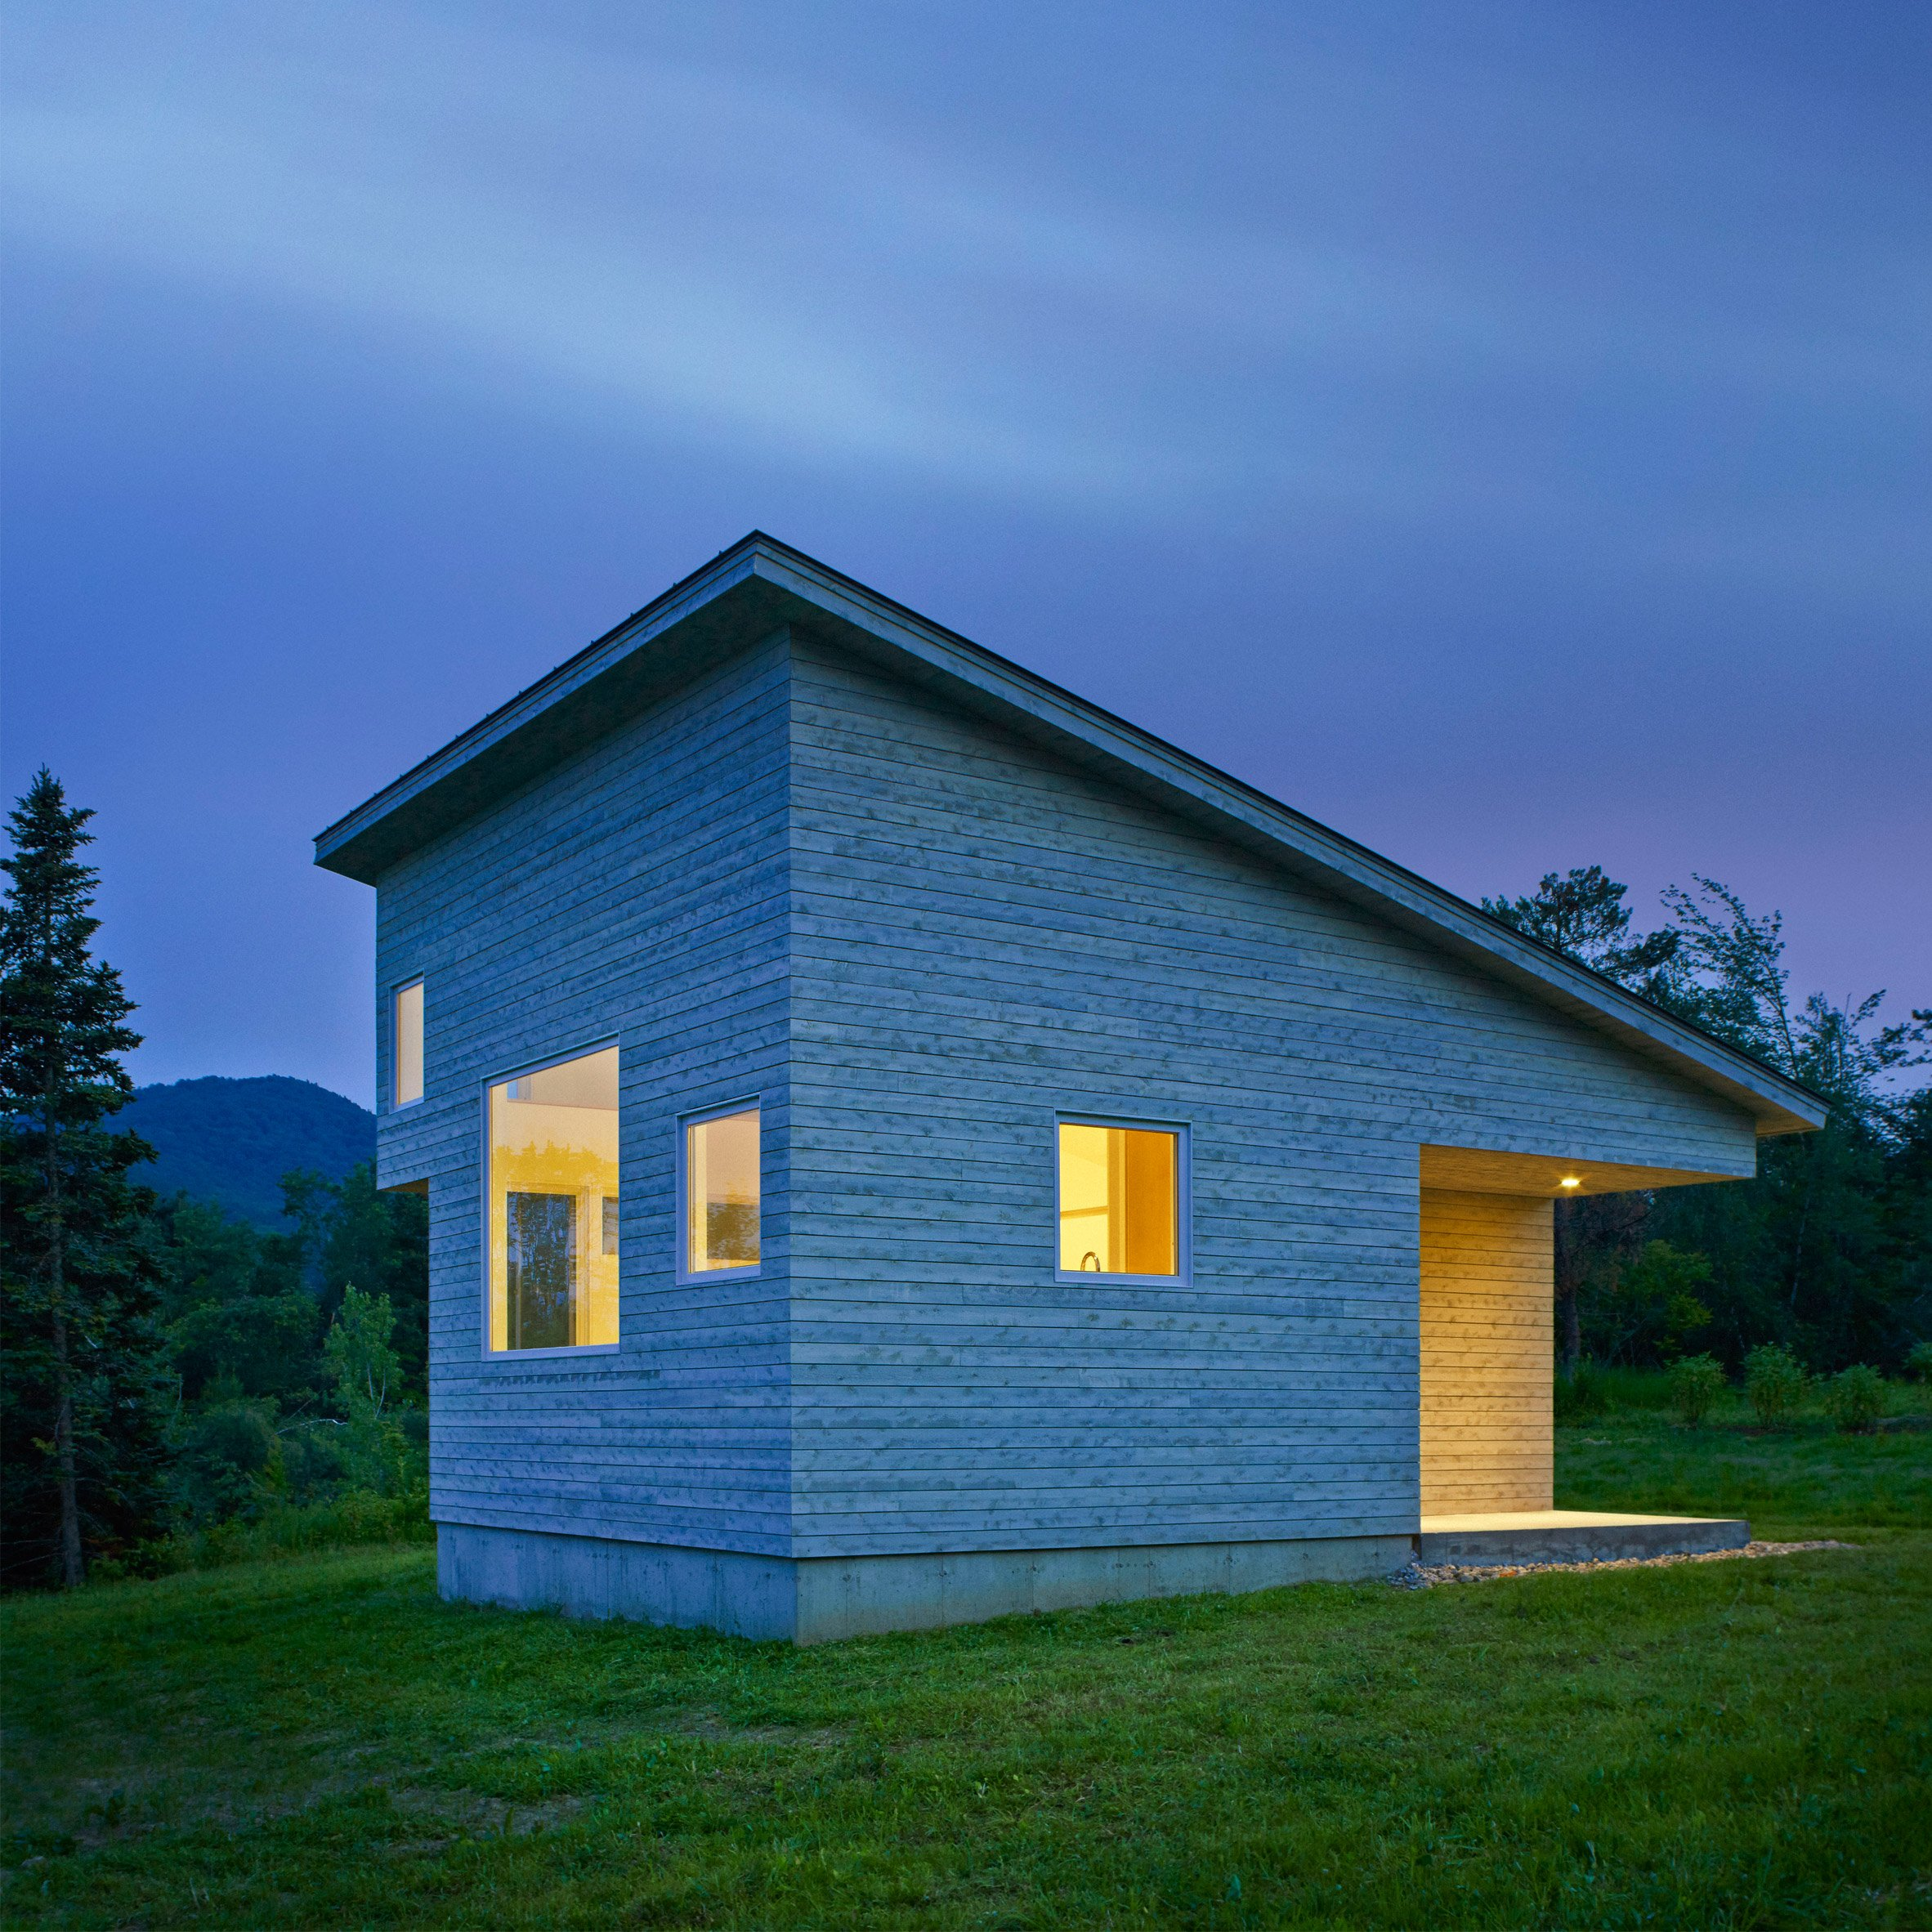 High Quality Elizabeth Herrmann Creates Tiny House For Artist In Vermont